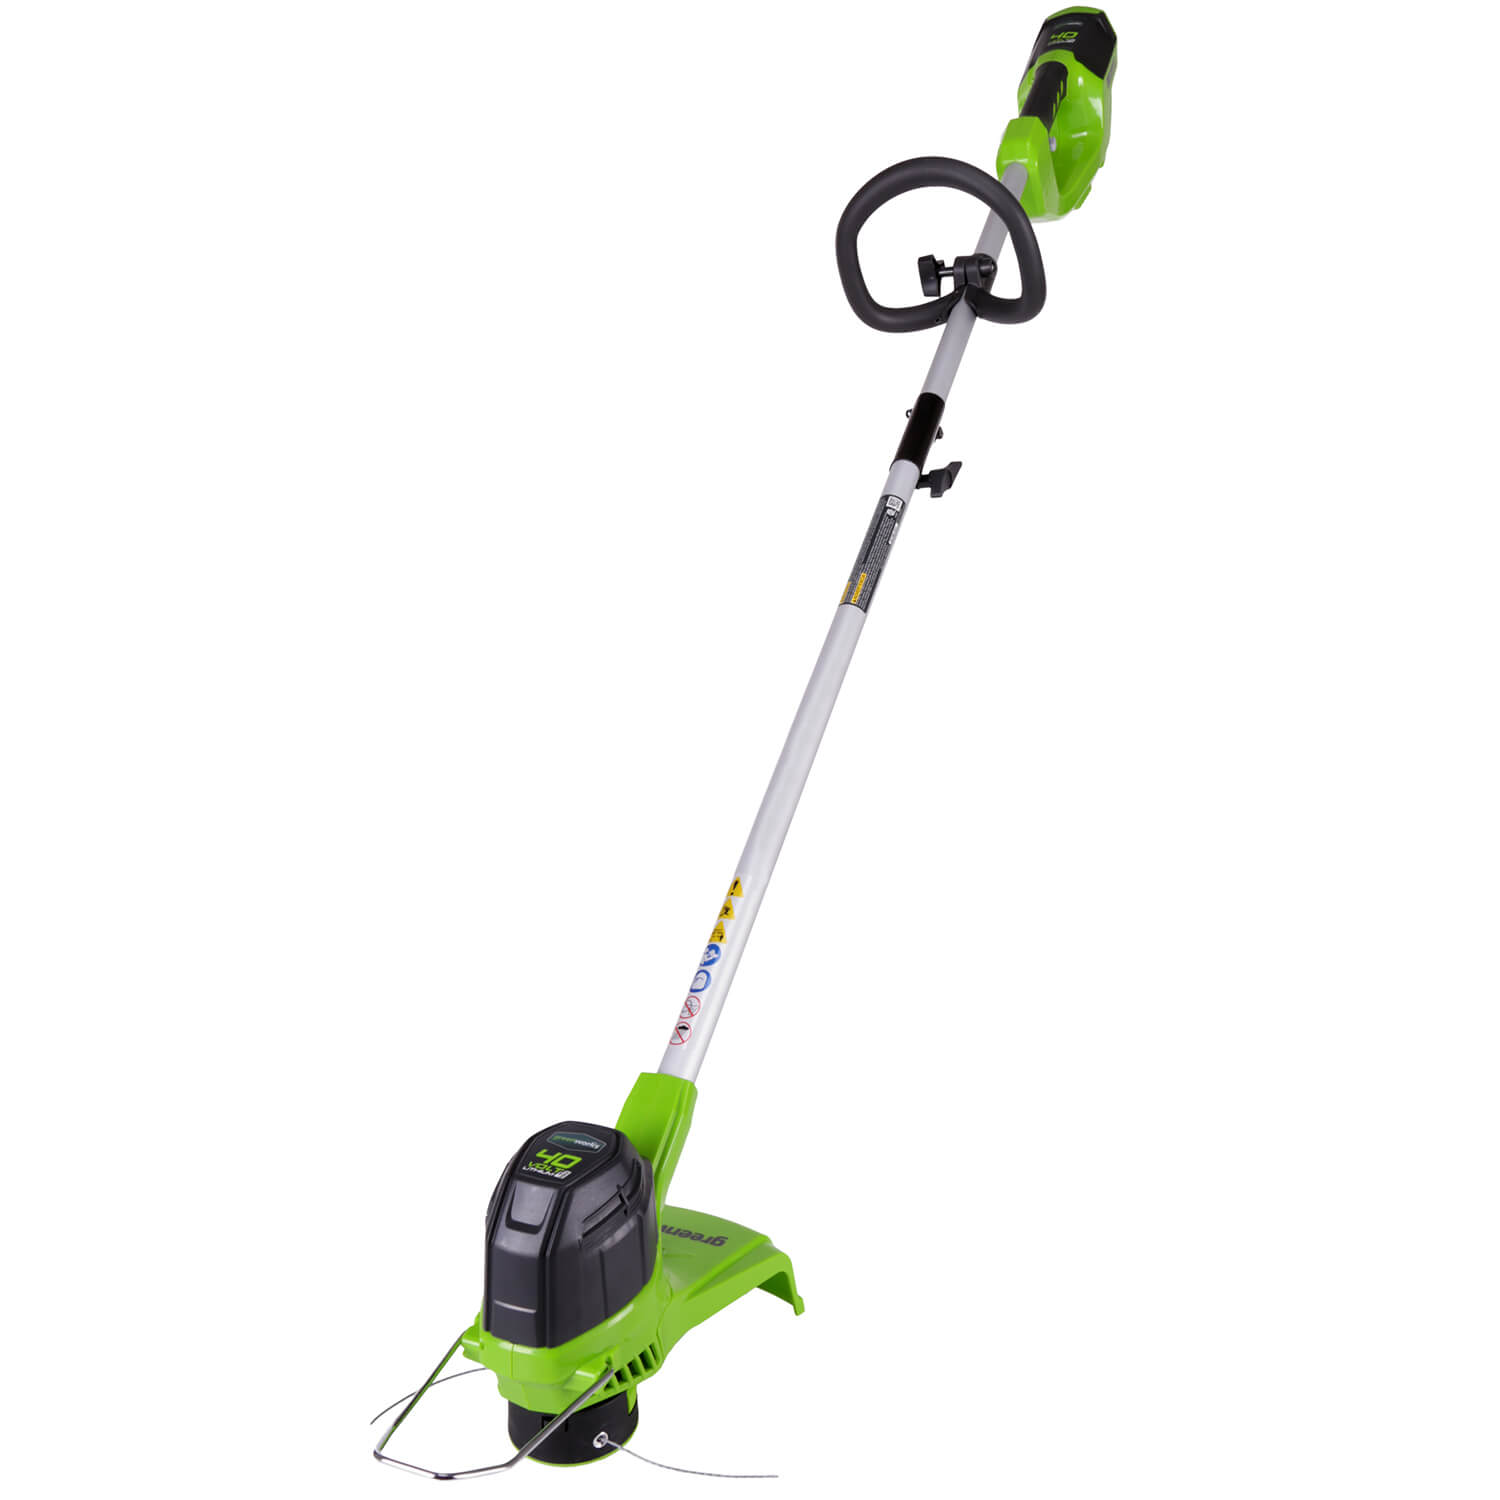 Greenworks 12-Inch 40V Cordless String Trimmer, 2.0 AH Battery Included 2101602 by Sunrise Global Marketing, LLC